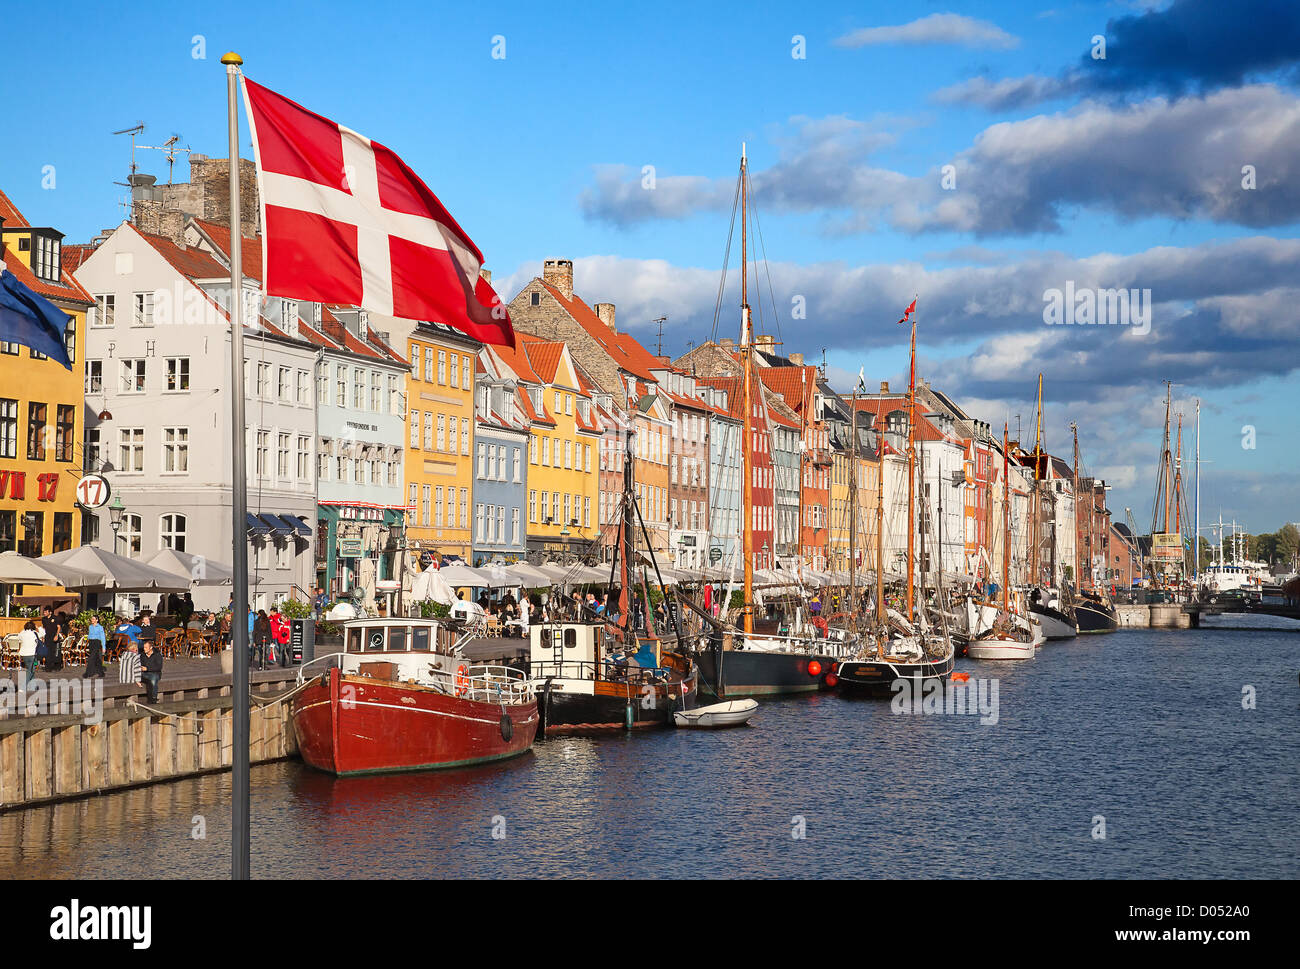 COPENHAGEN, DENMARK - AUGUST 25: Unidentified people enjoying sunny weather in open cafees of the famous Nyhavn - Stock Image